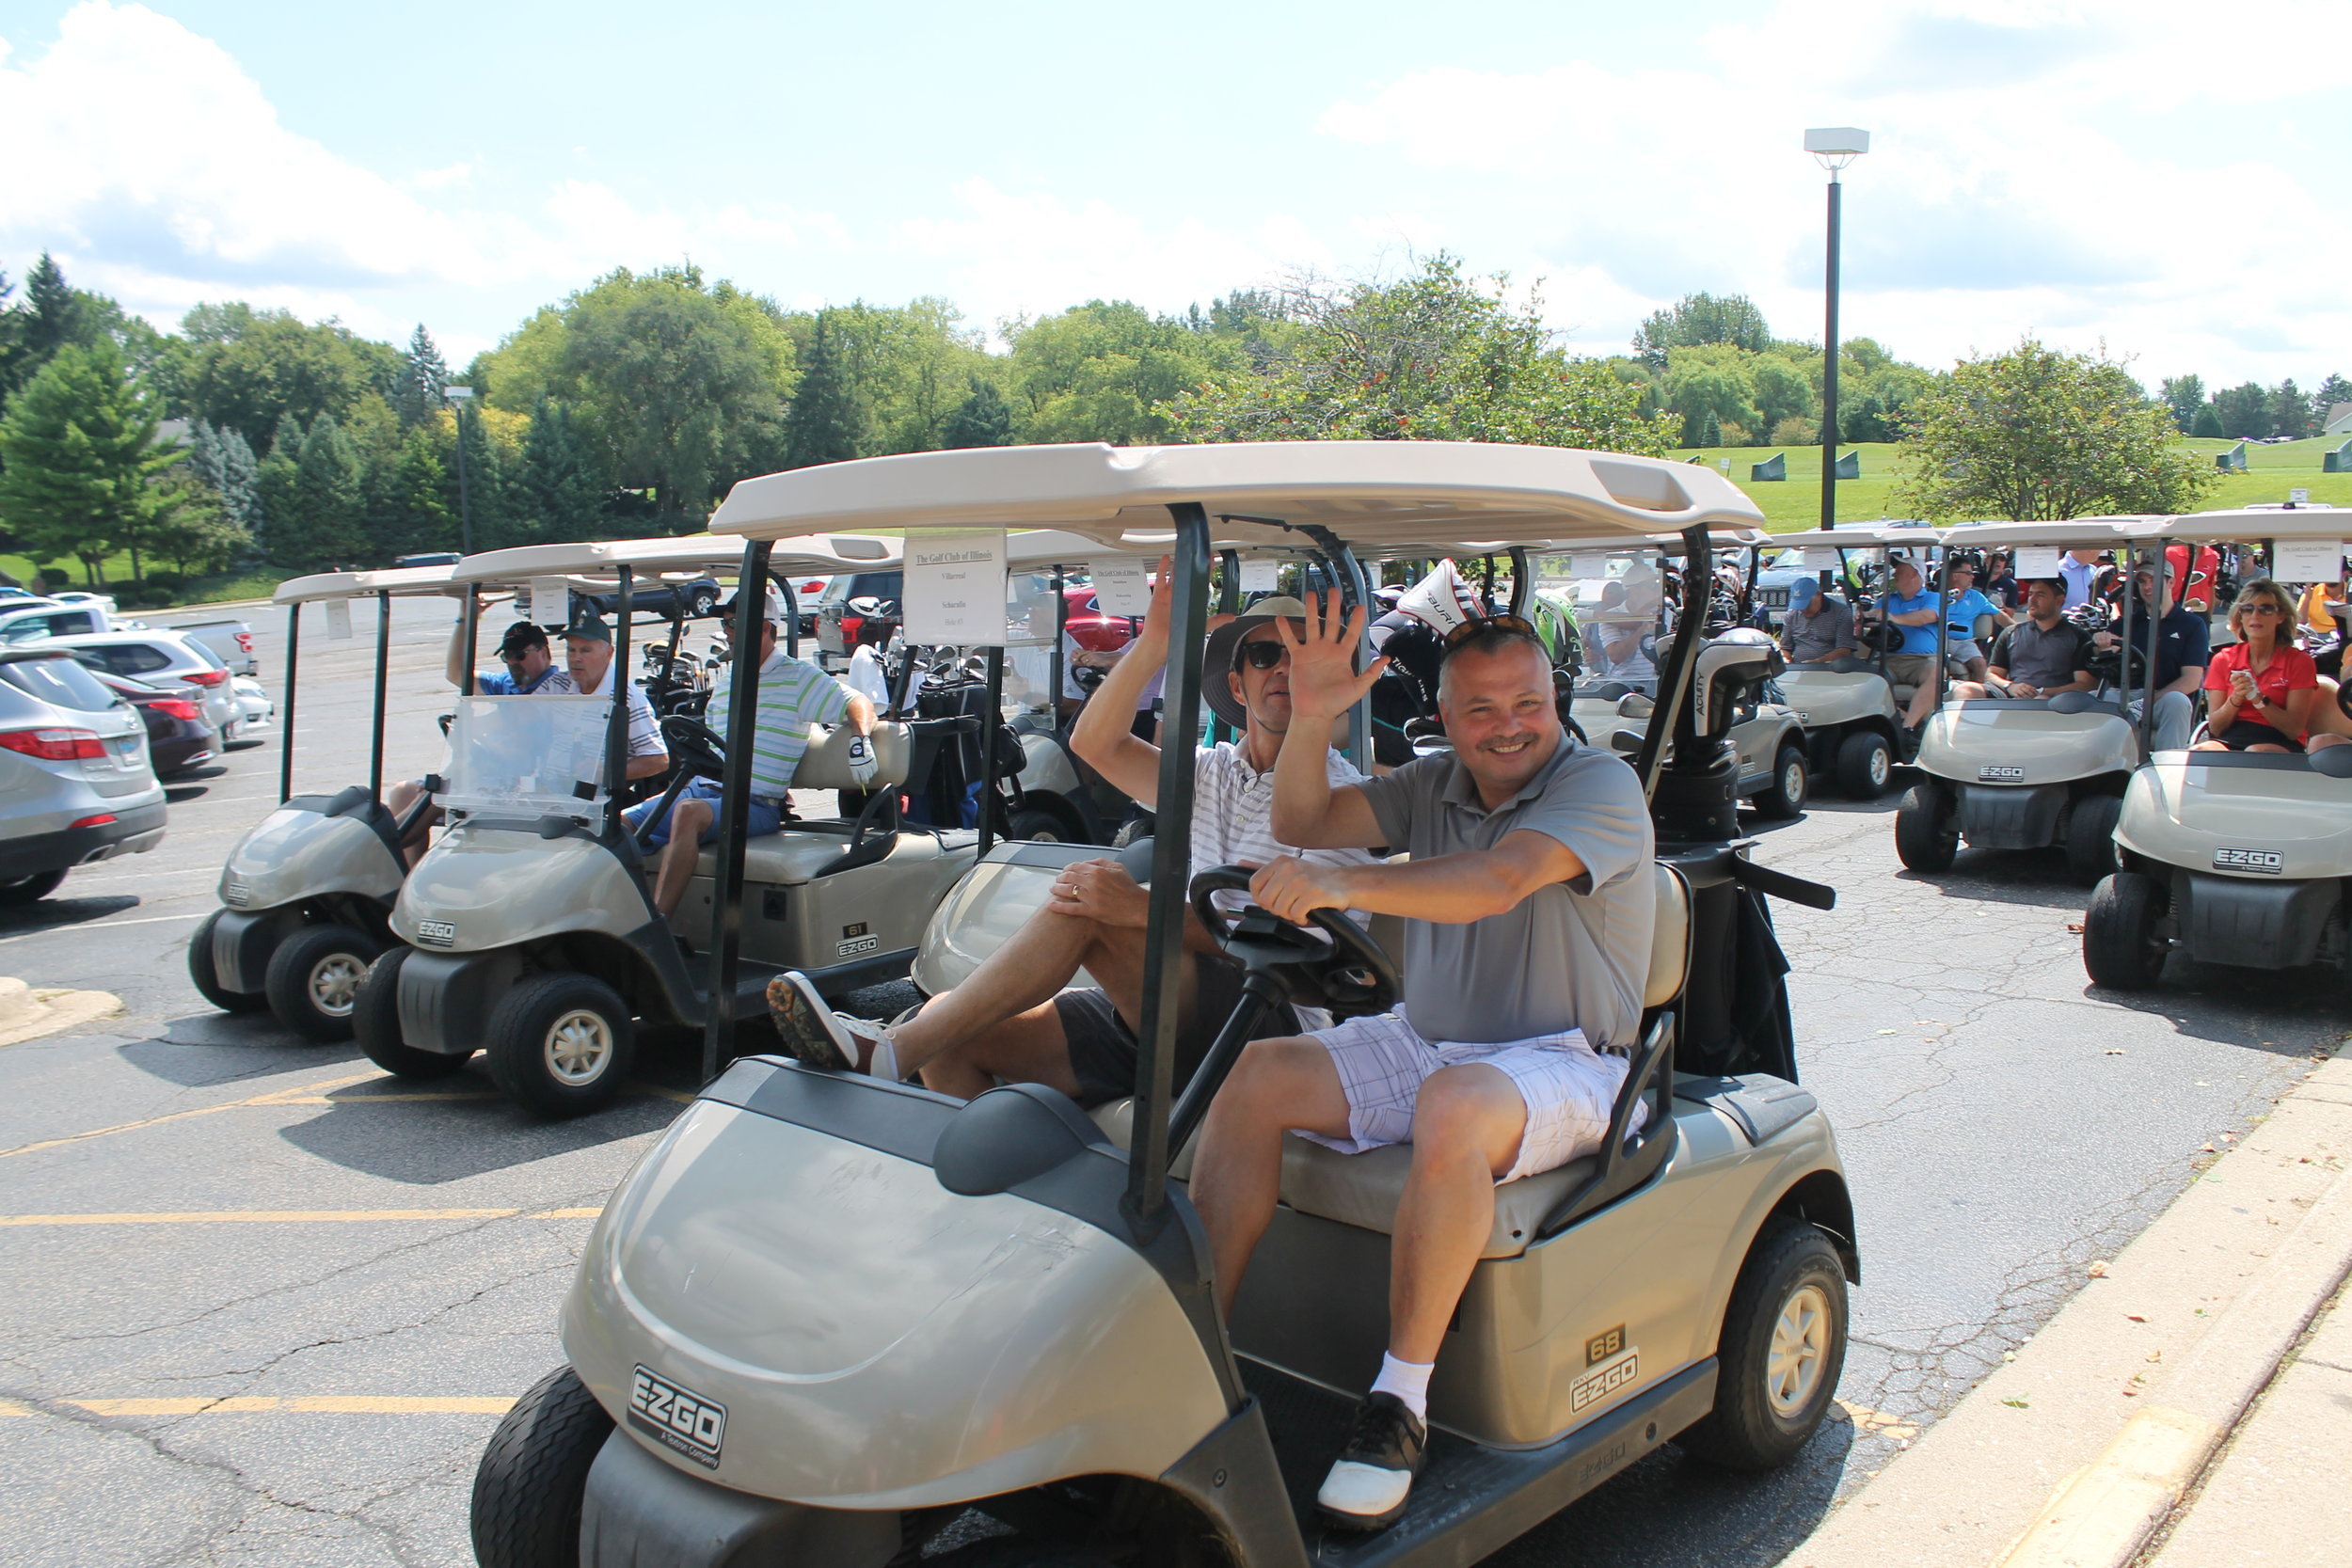 2019 Annual Scholarship Golf Outing - Click the photo to see photos from the event!